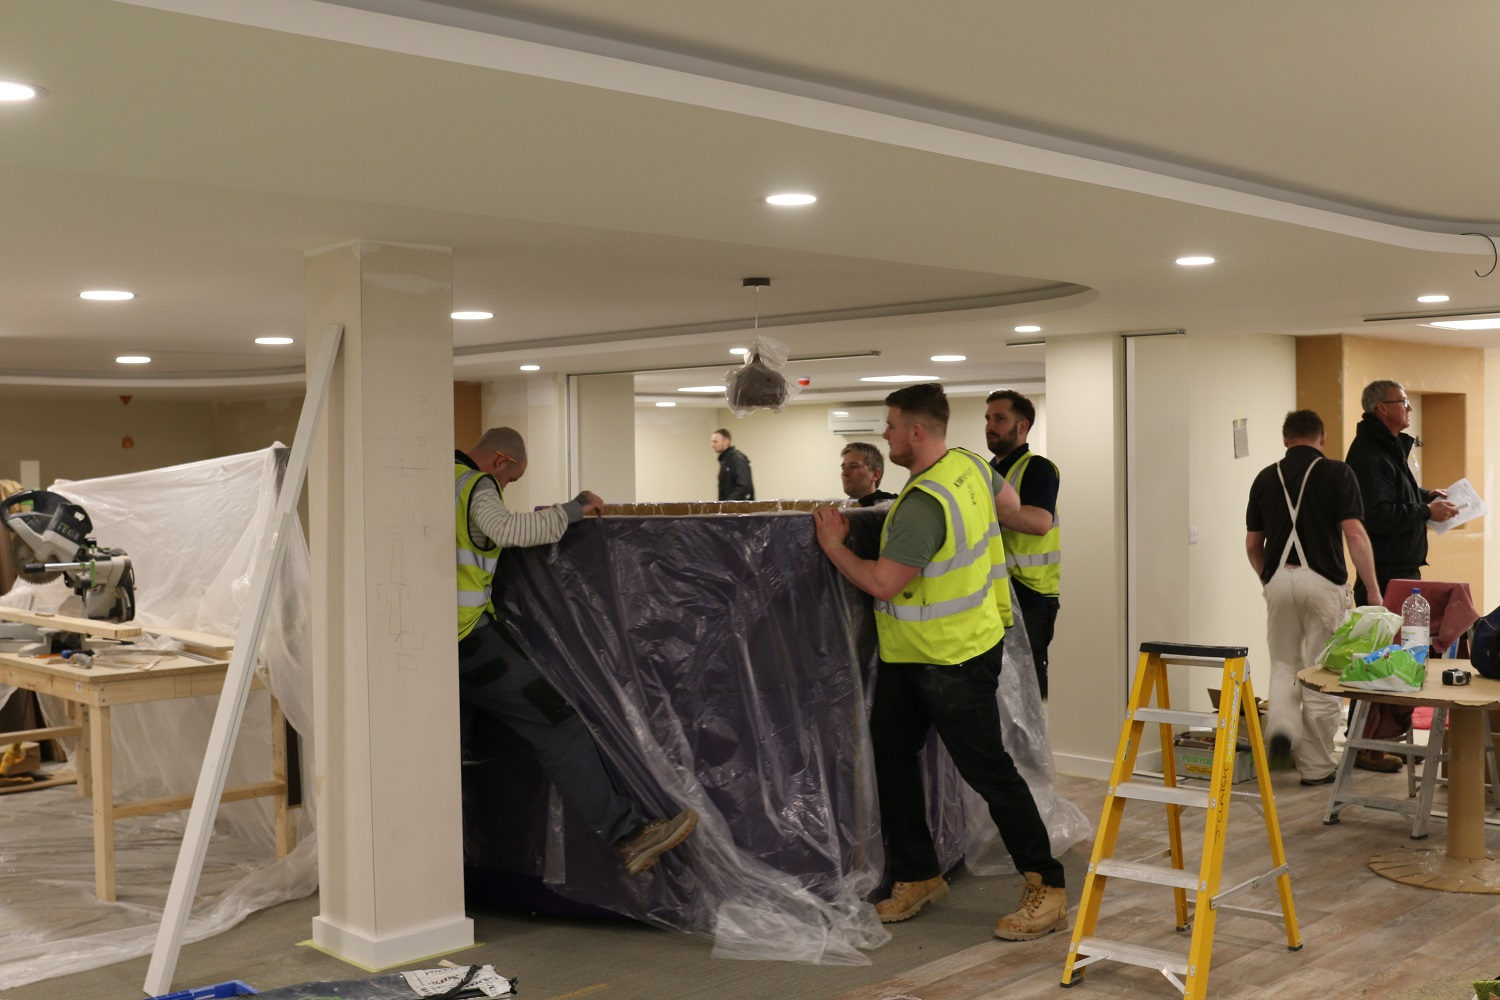 Commercial, warehouse, office, boardroom or break-out room fit out &refurbishment